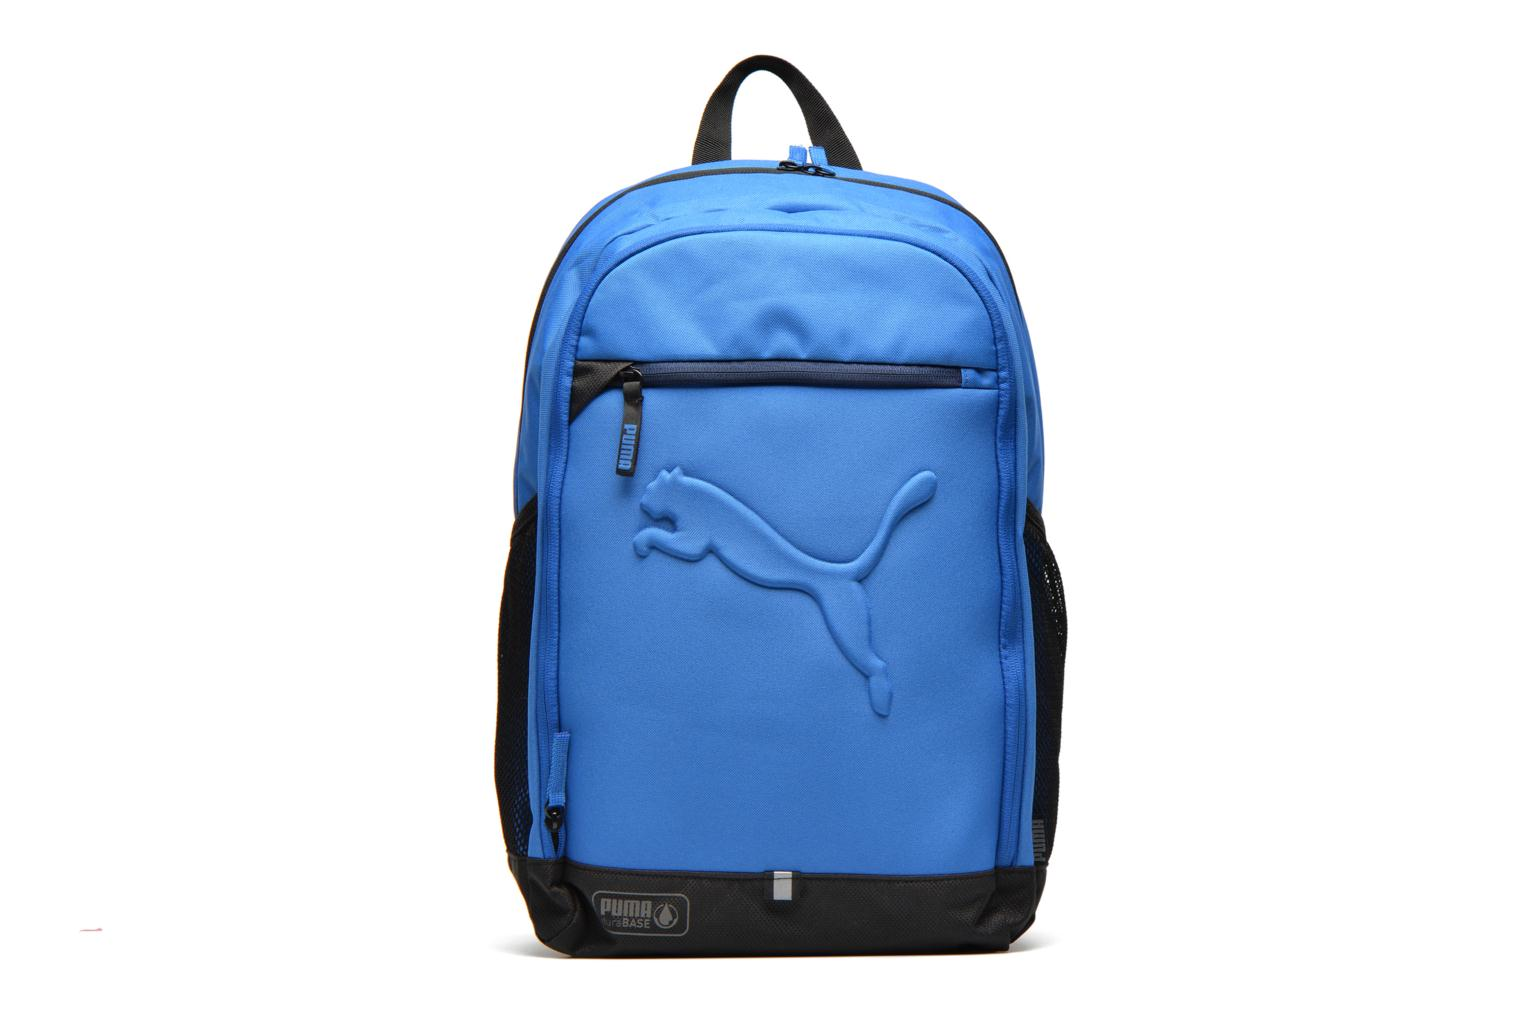 b879a1970d6a puma buzz backpack cheap   OFF46% Discounted